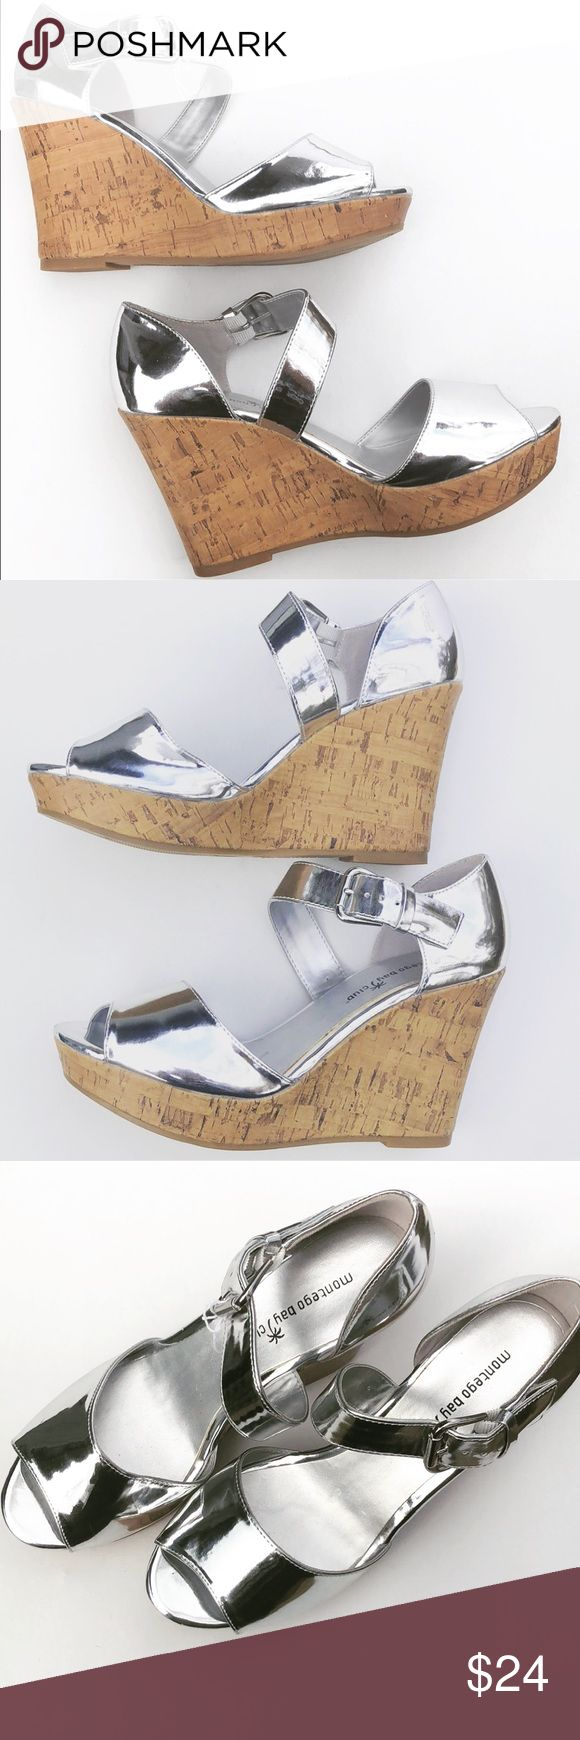 New Silver Wedges Cork Silver Wedges with cork very attractive cross over strap. These will be sexy and comfortable great for maxi dresses or jeans. New without a box. Montego Bay Club Shoes Wedges